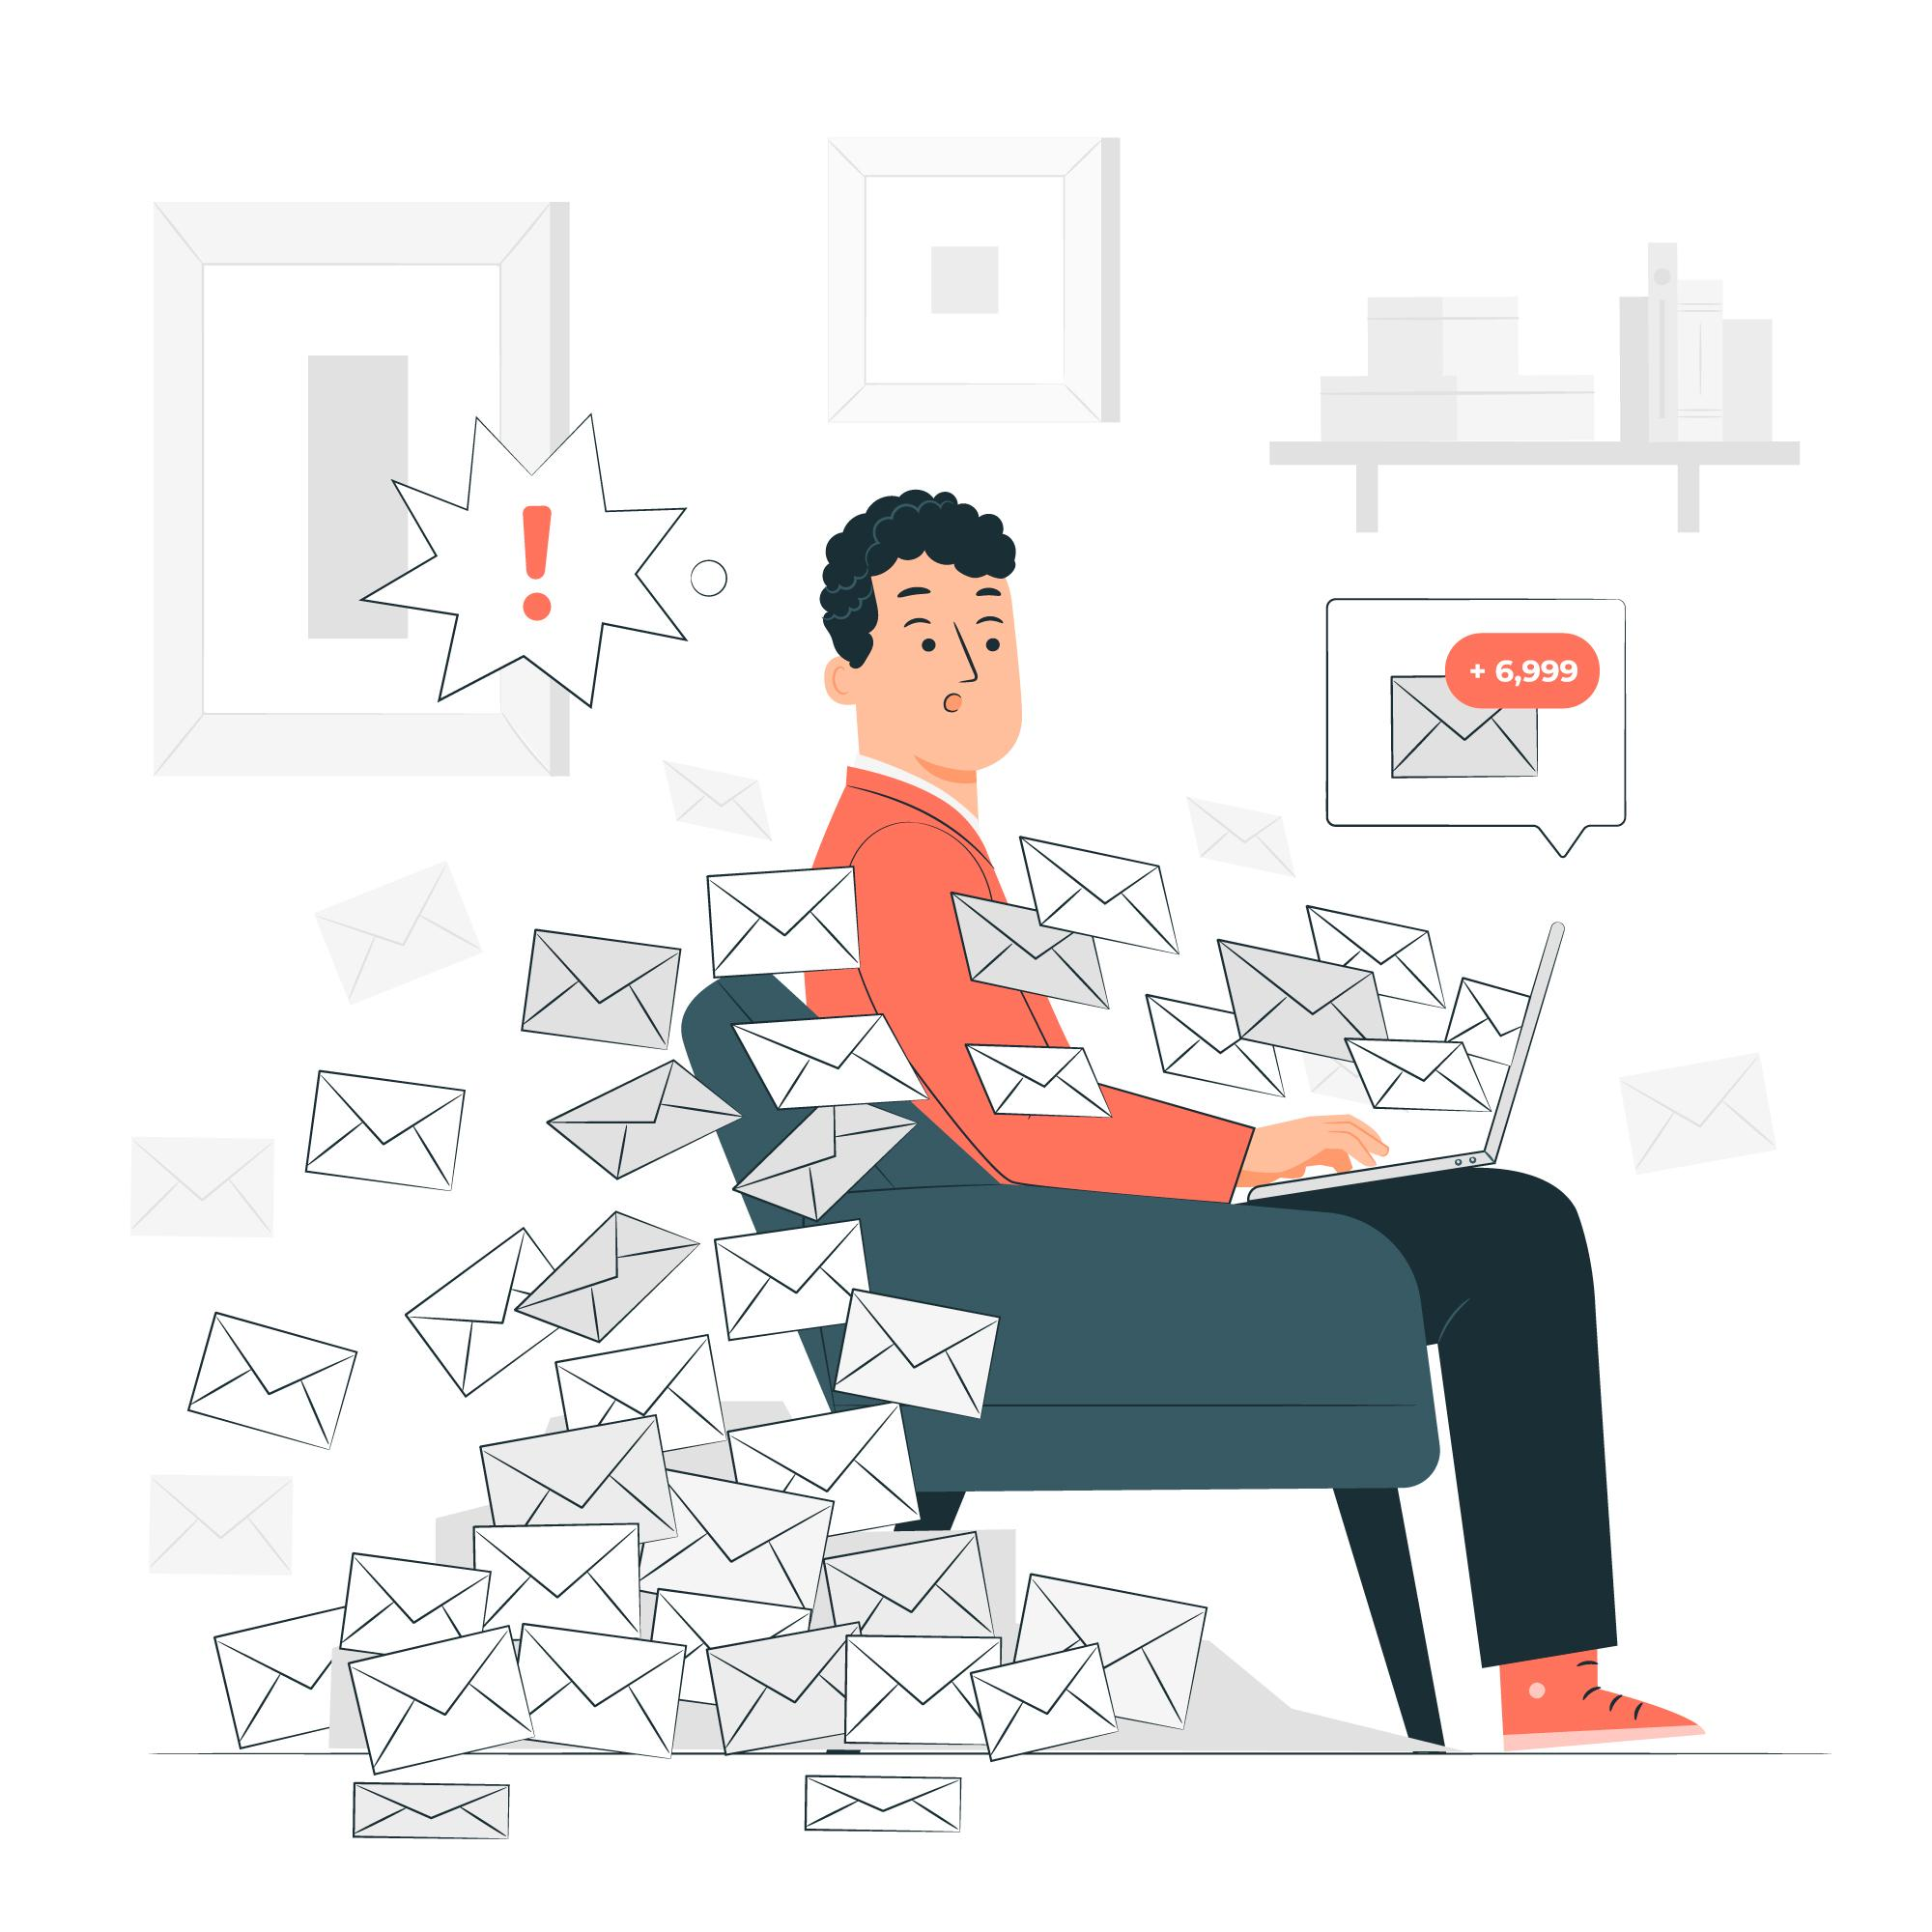 Email fatigue among users opens doors for cybercriminals